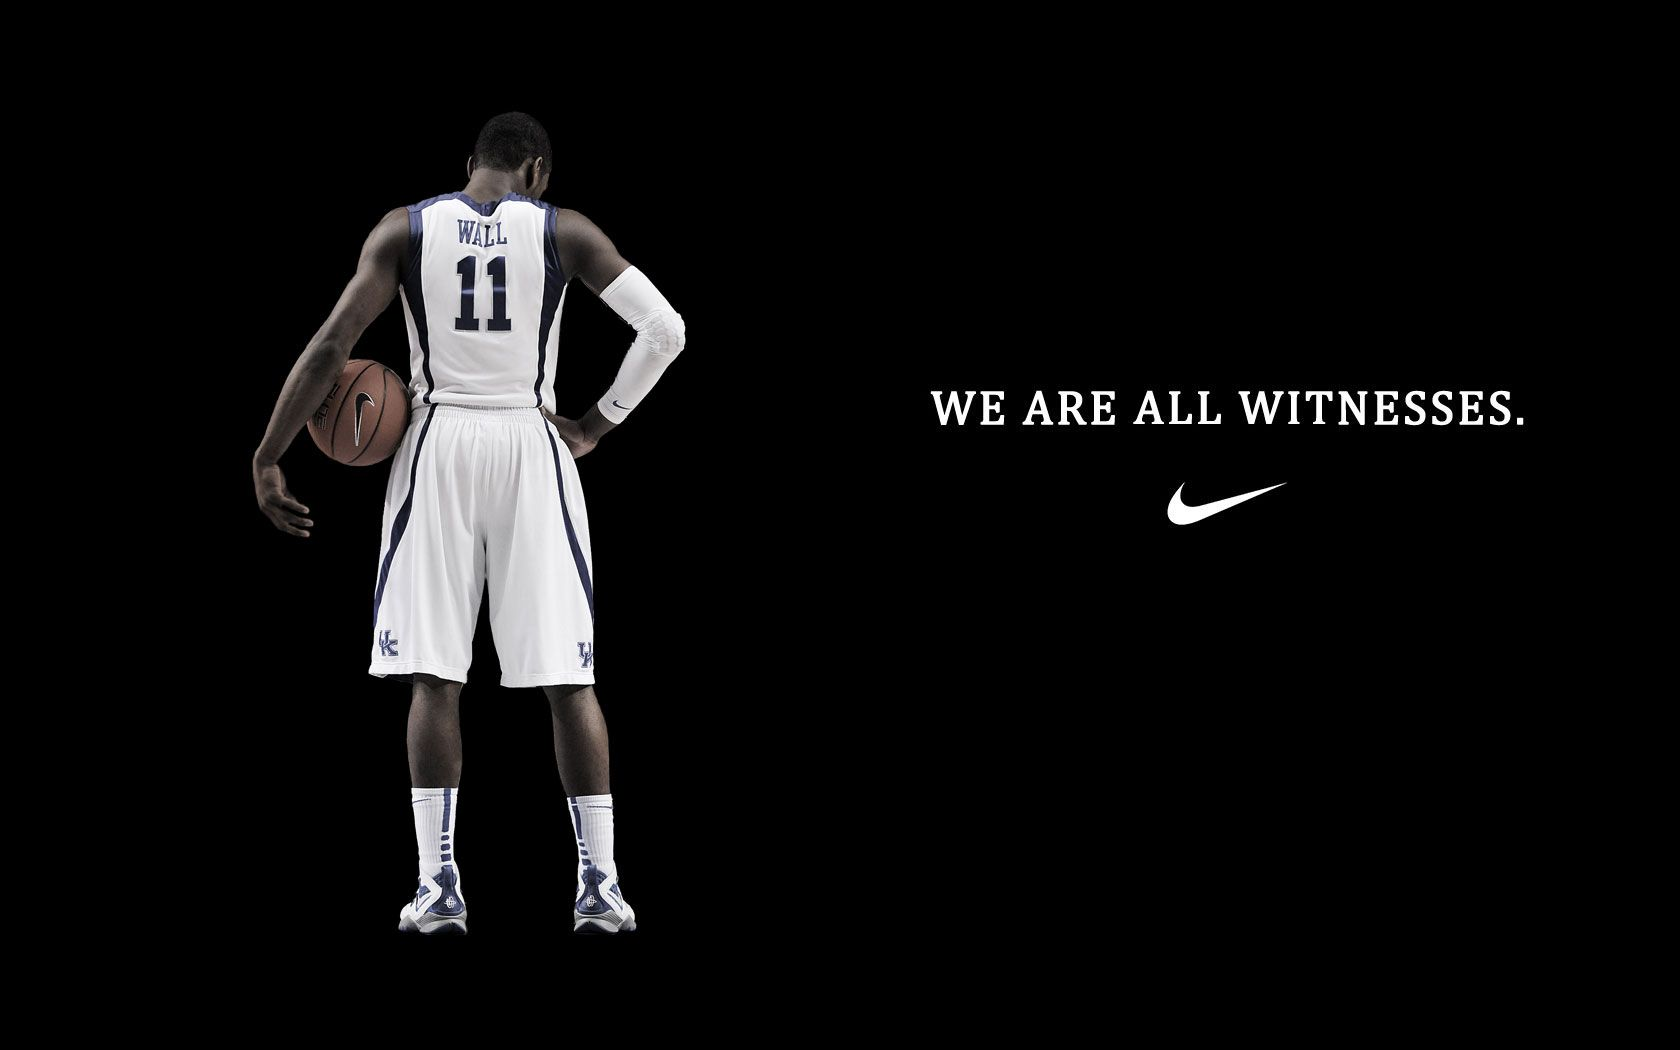 Basketball Nike Wallpaper